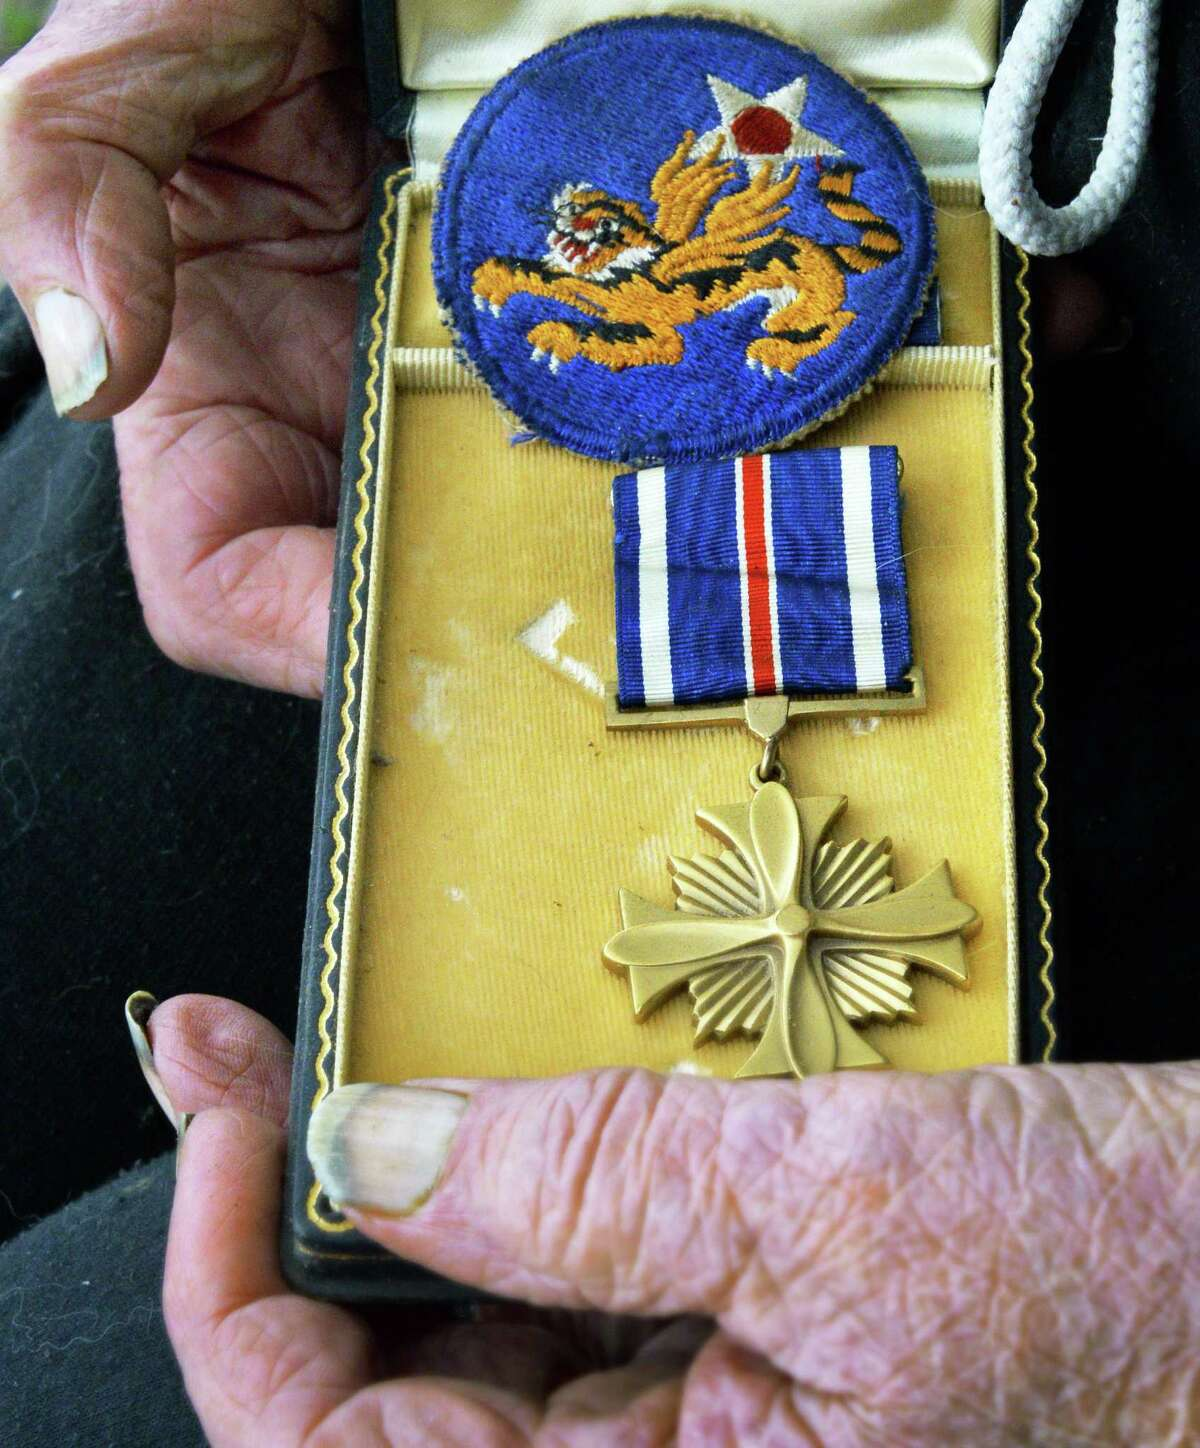 World War II veteran of the 14th Army Air Force Jack Gordon, 95, holds his Distinguished Flying Cross and Flying Tigers patch at his rural home Thursday May 19, 2016 in Broome, NY. Gordon was a senior navigator on a C47 flying over